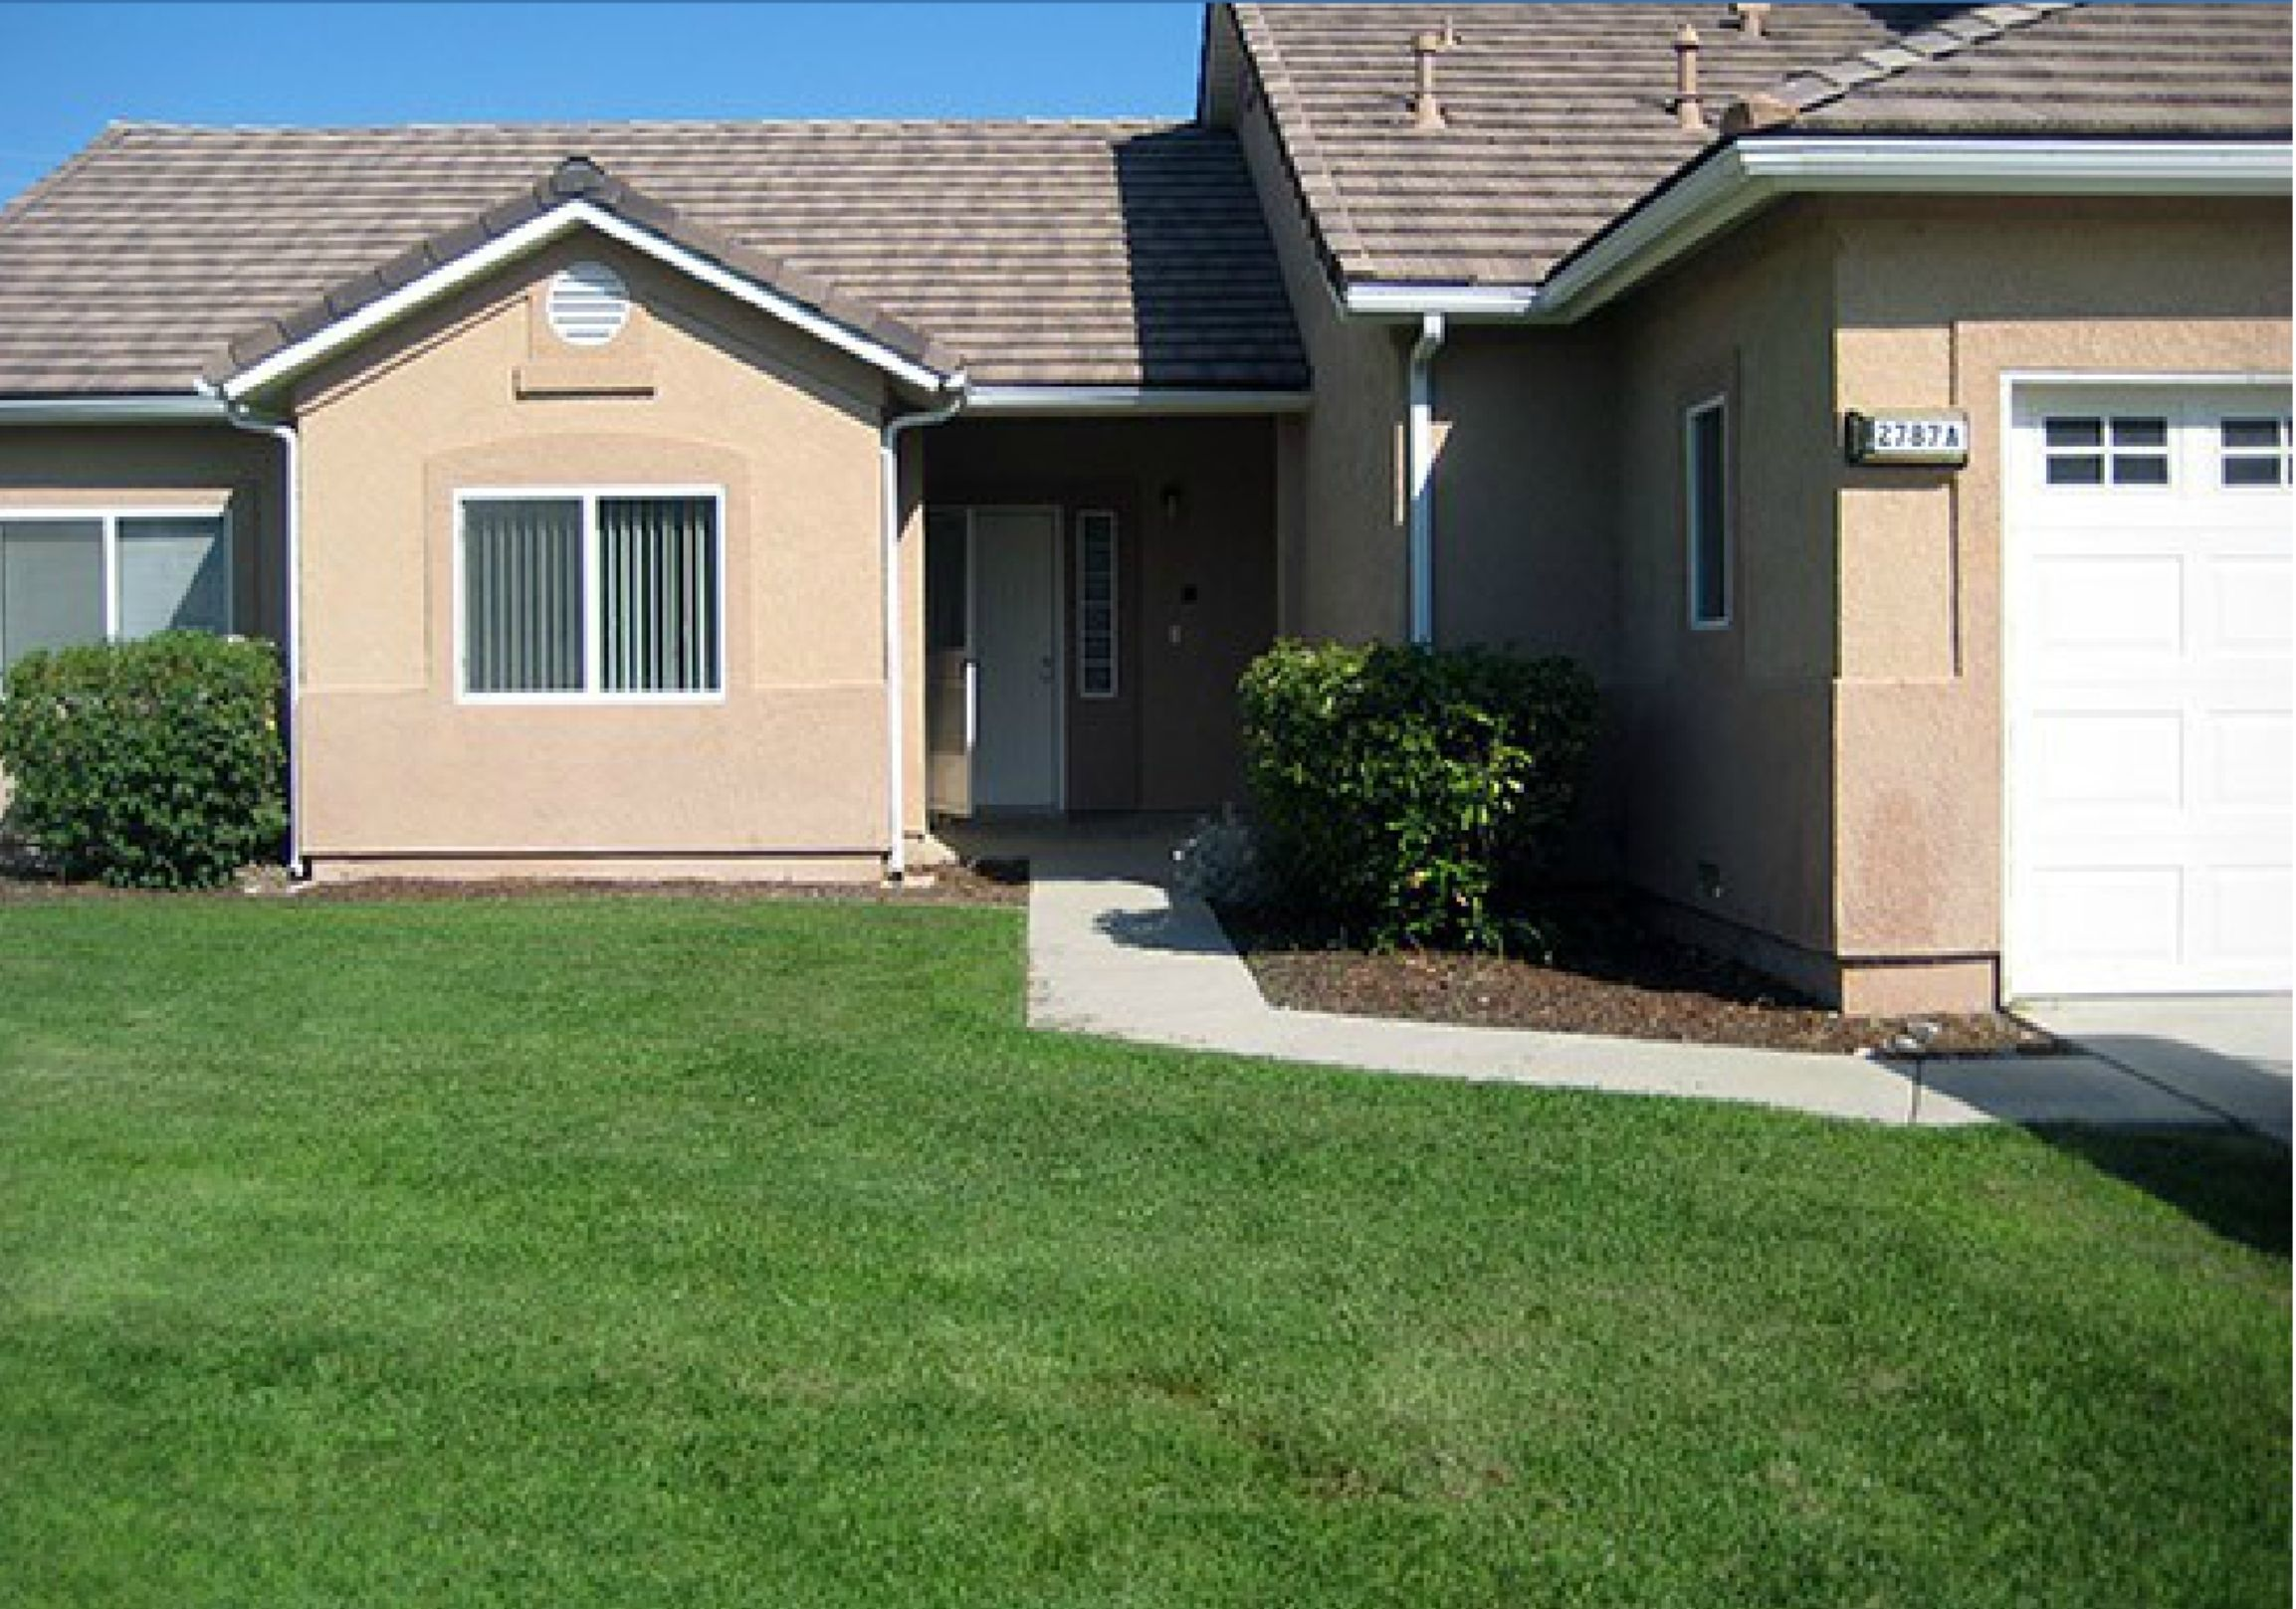 NAS Lemoore Midway Park Neighborhood Duplex style homes